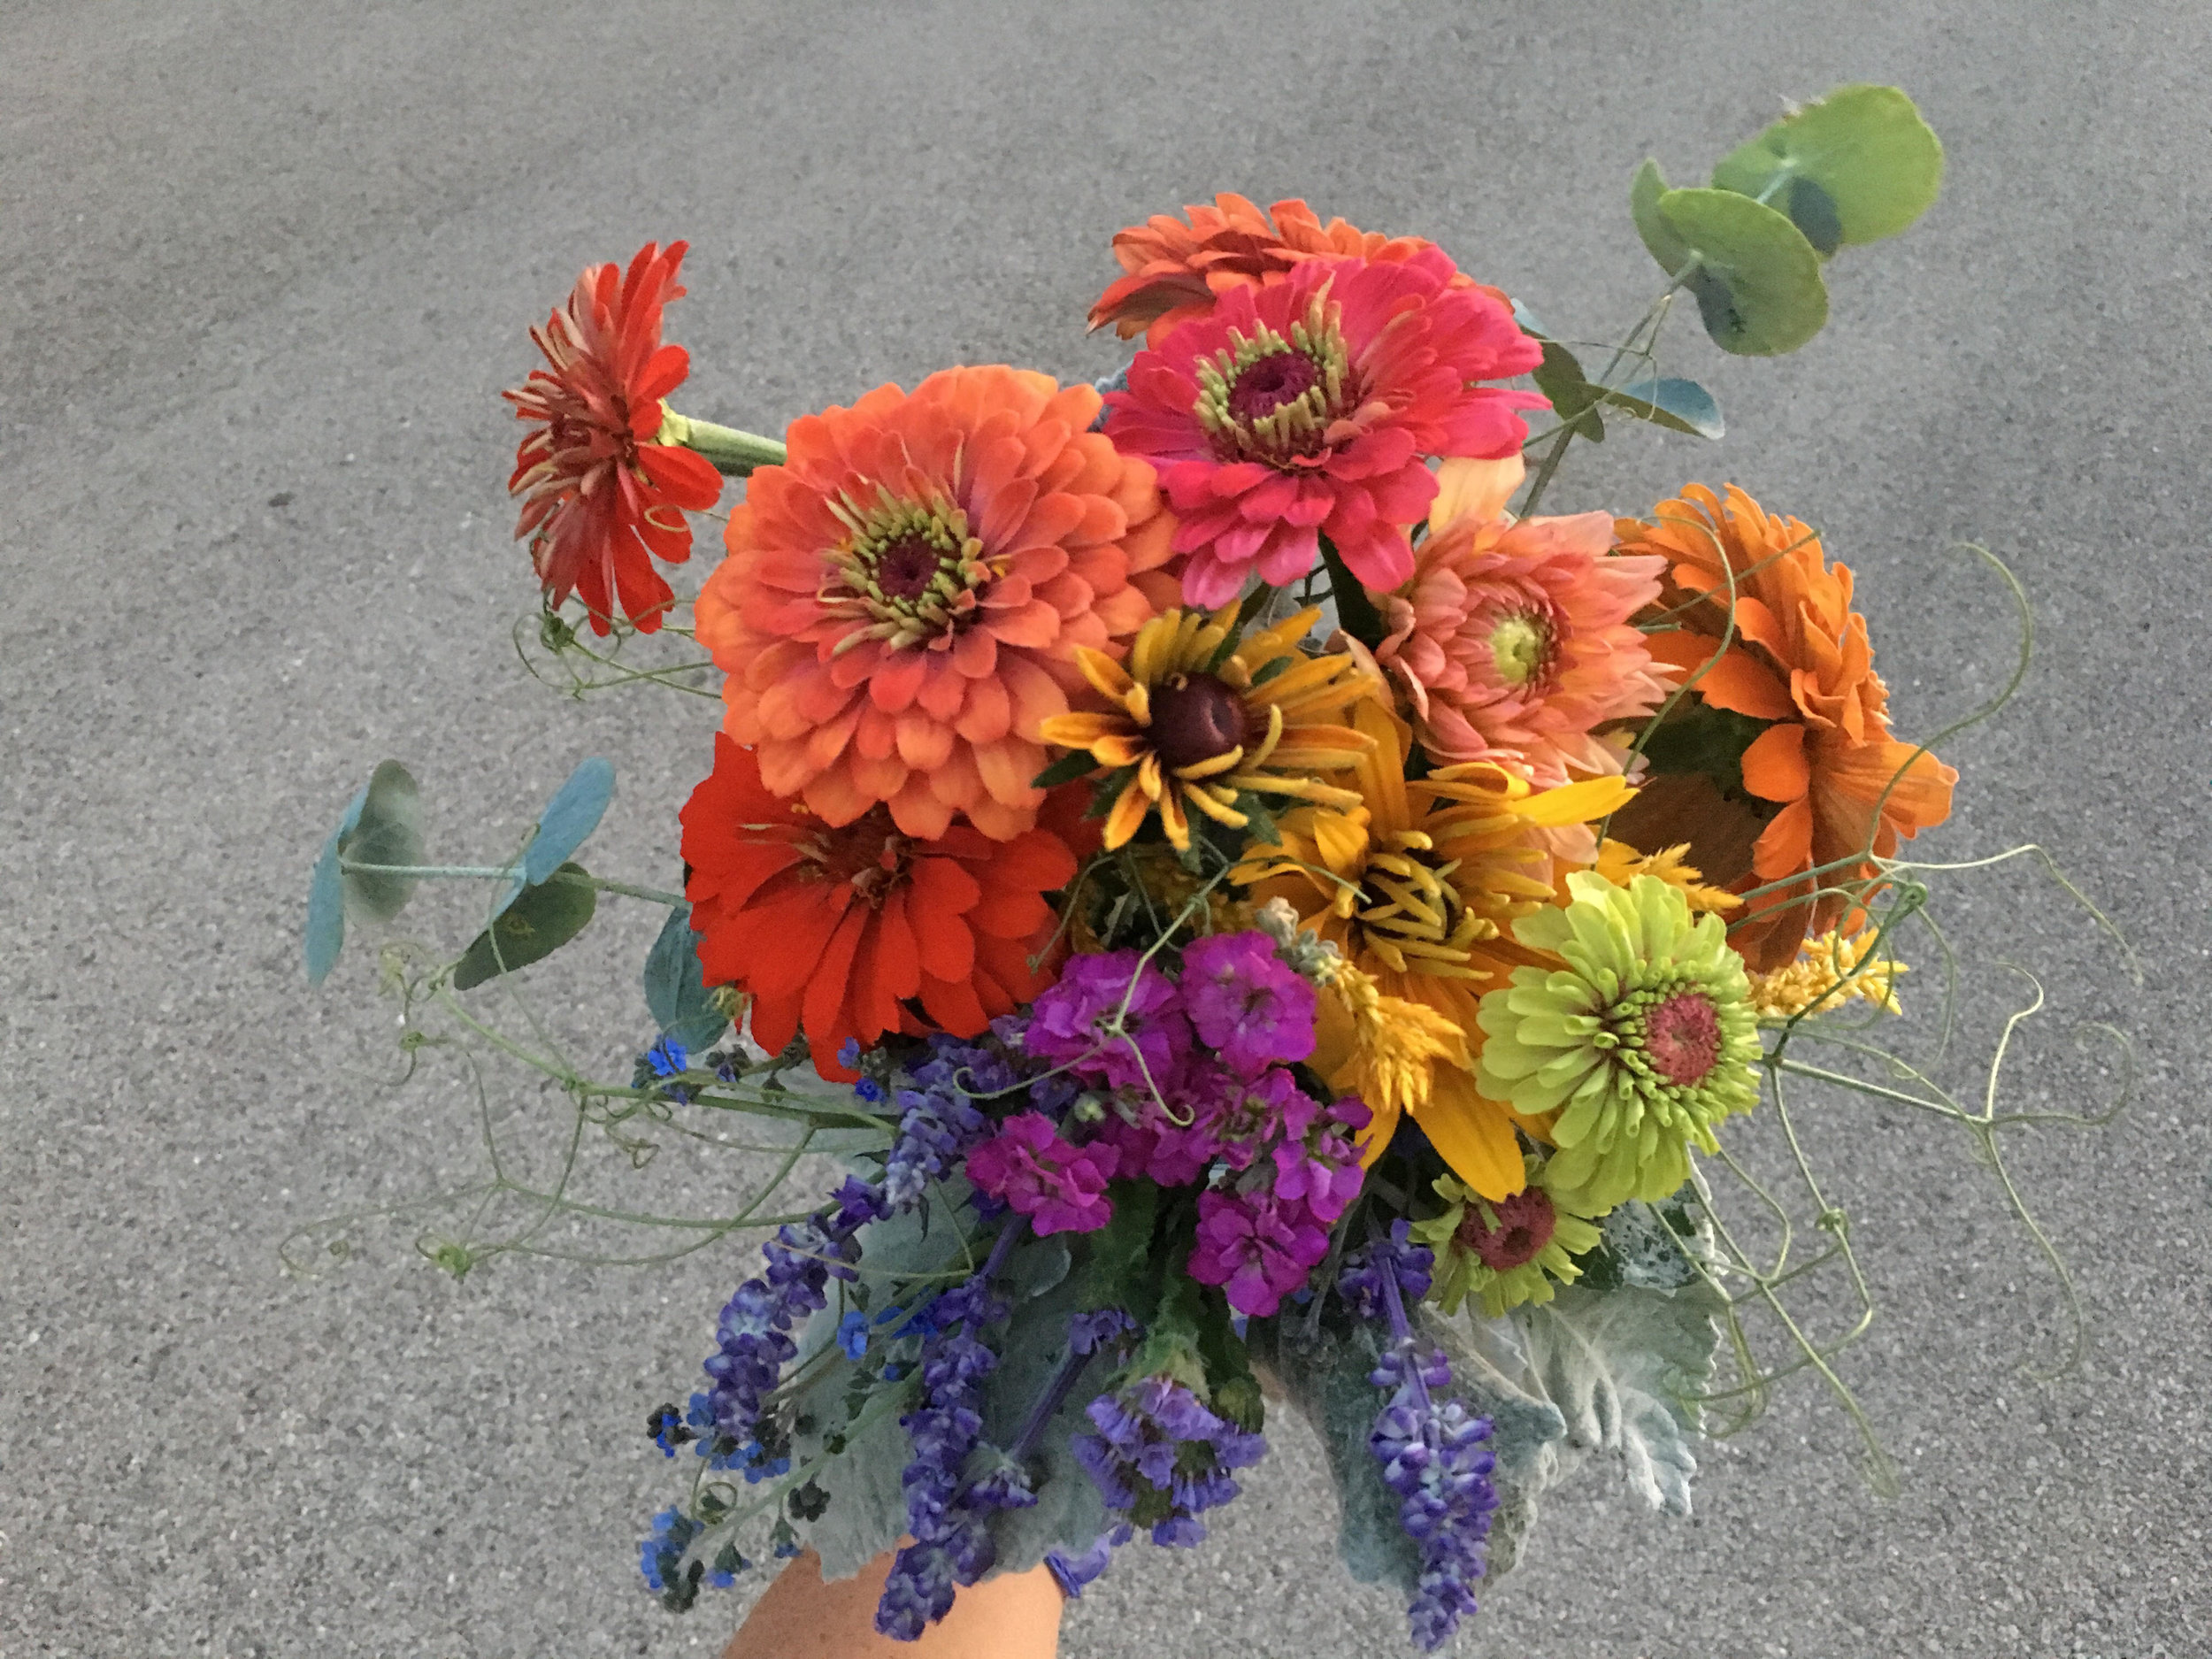 rainbow bouquet 7.31.19.jpg